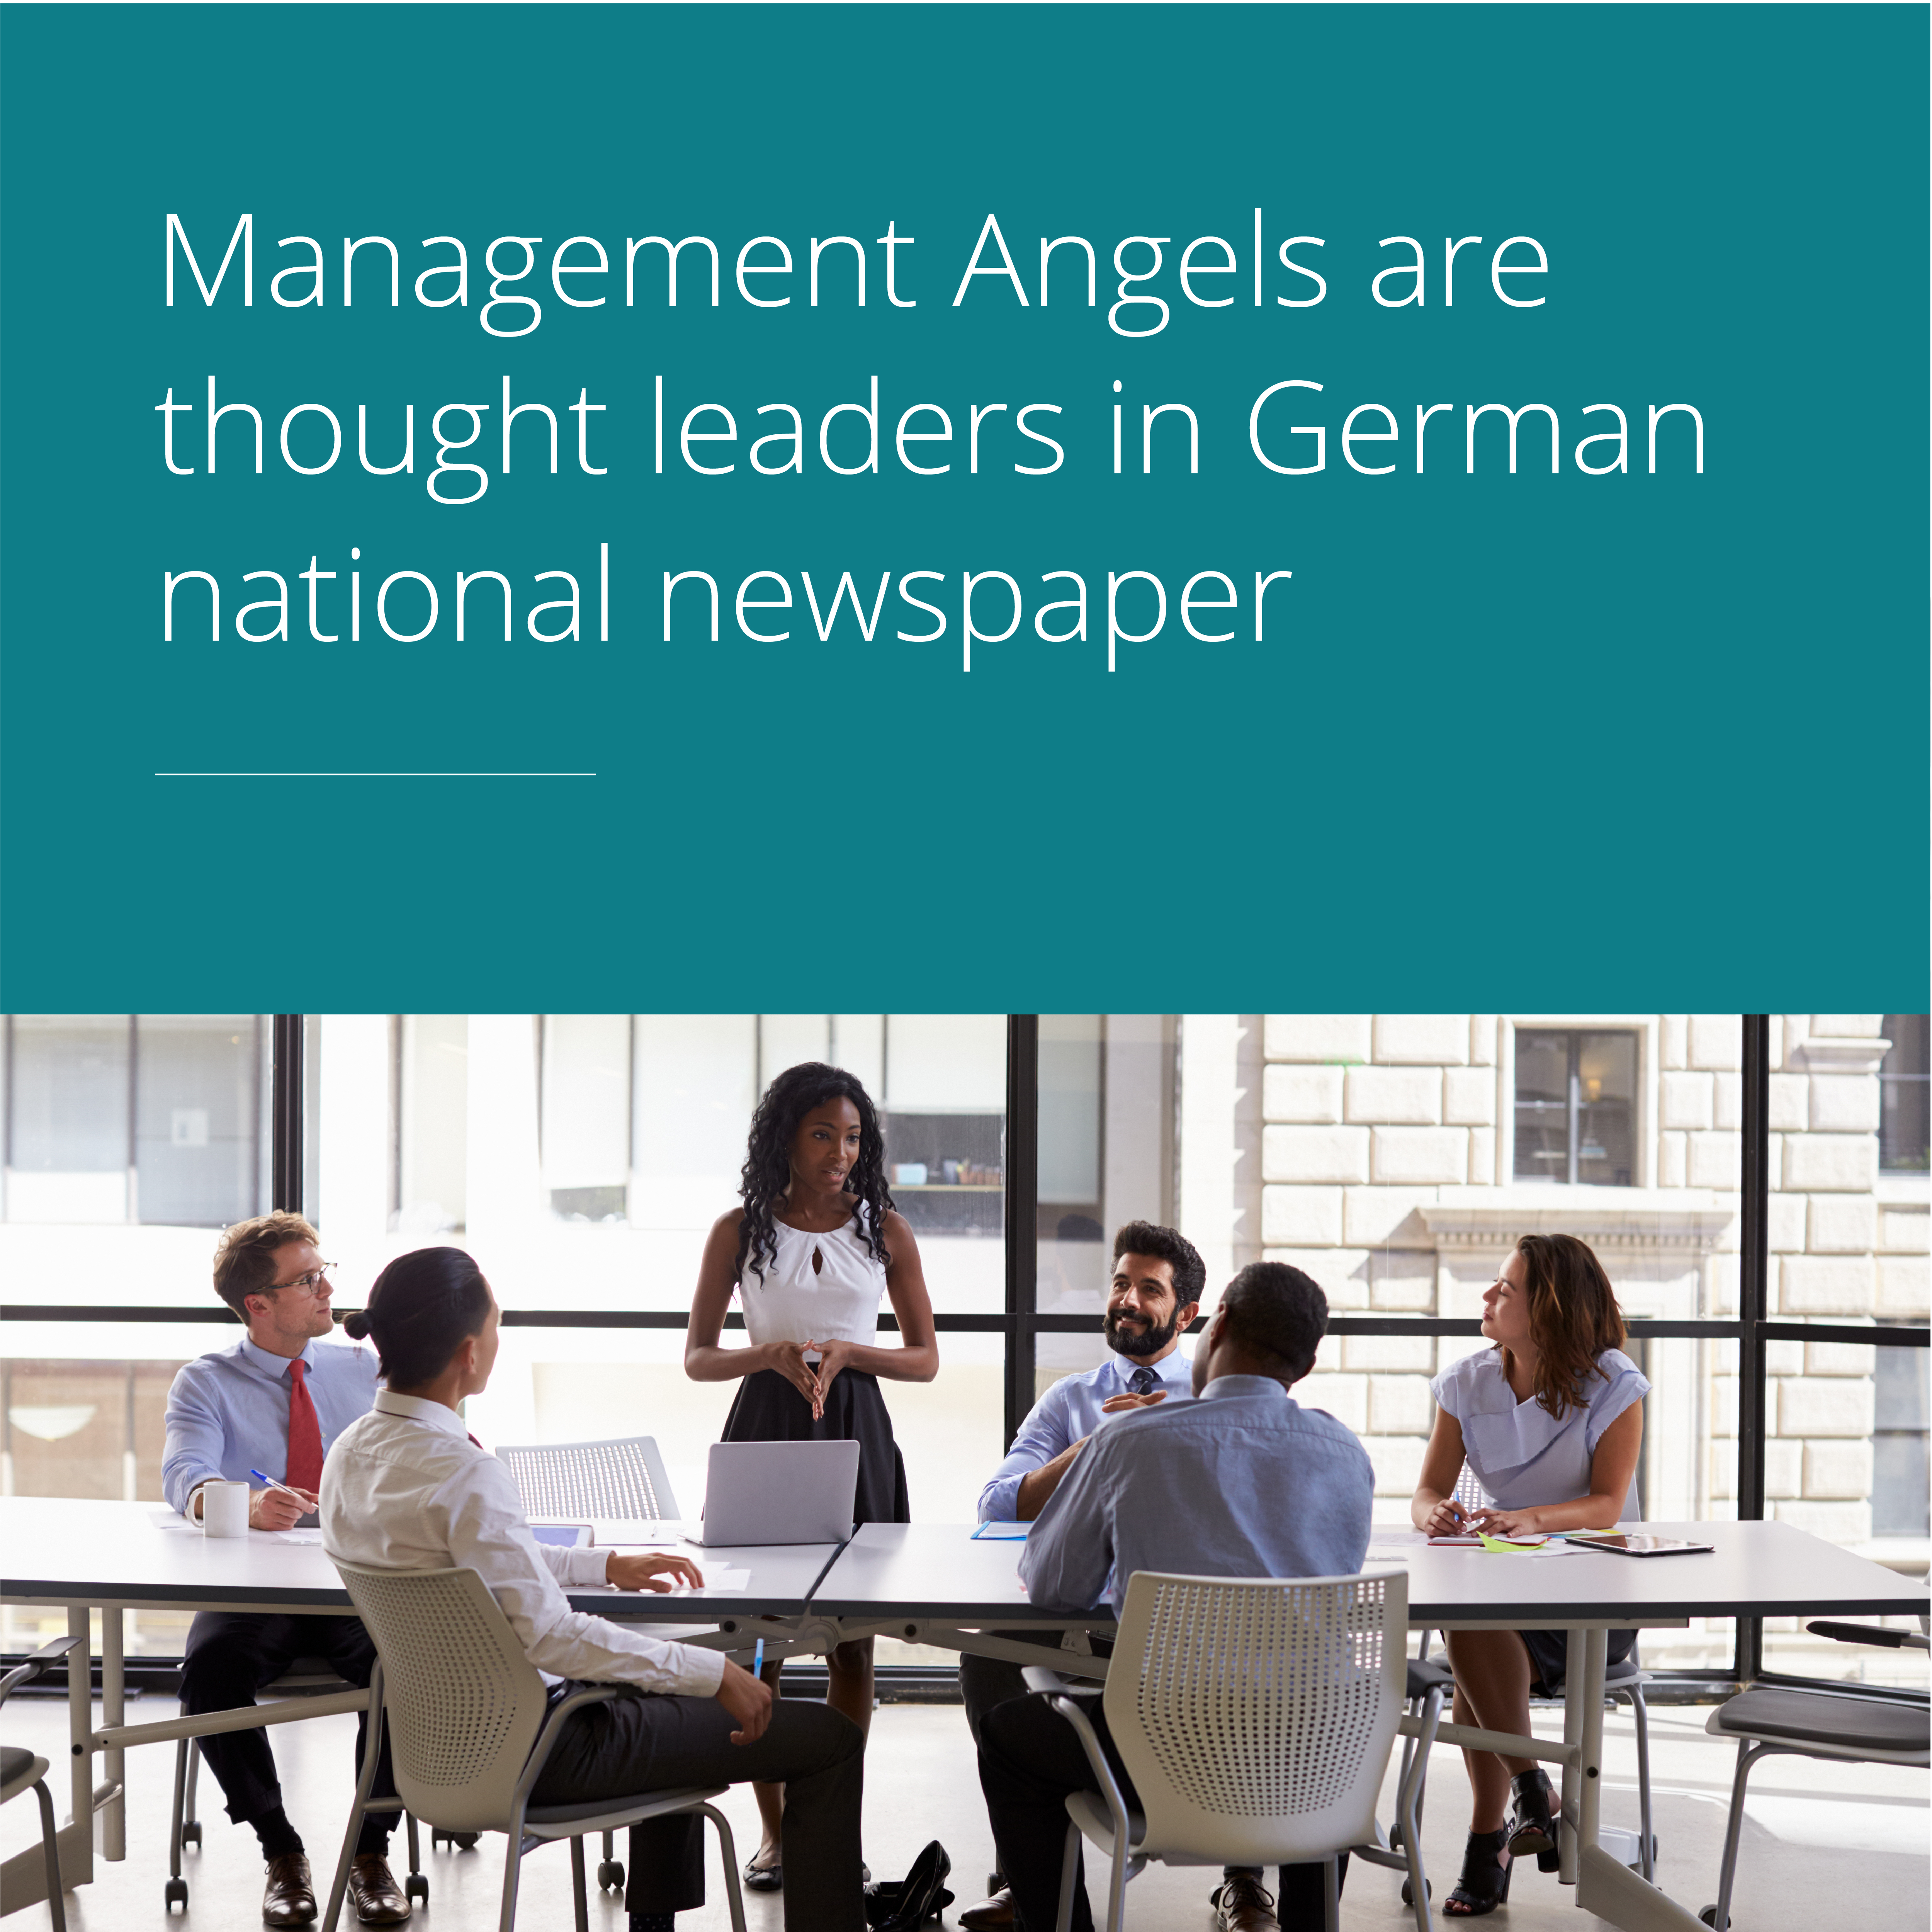 Thumbnail for Management Angels are thought leaders in German national newspaper